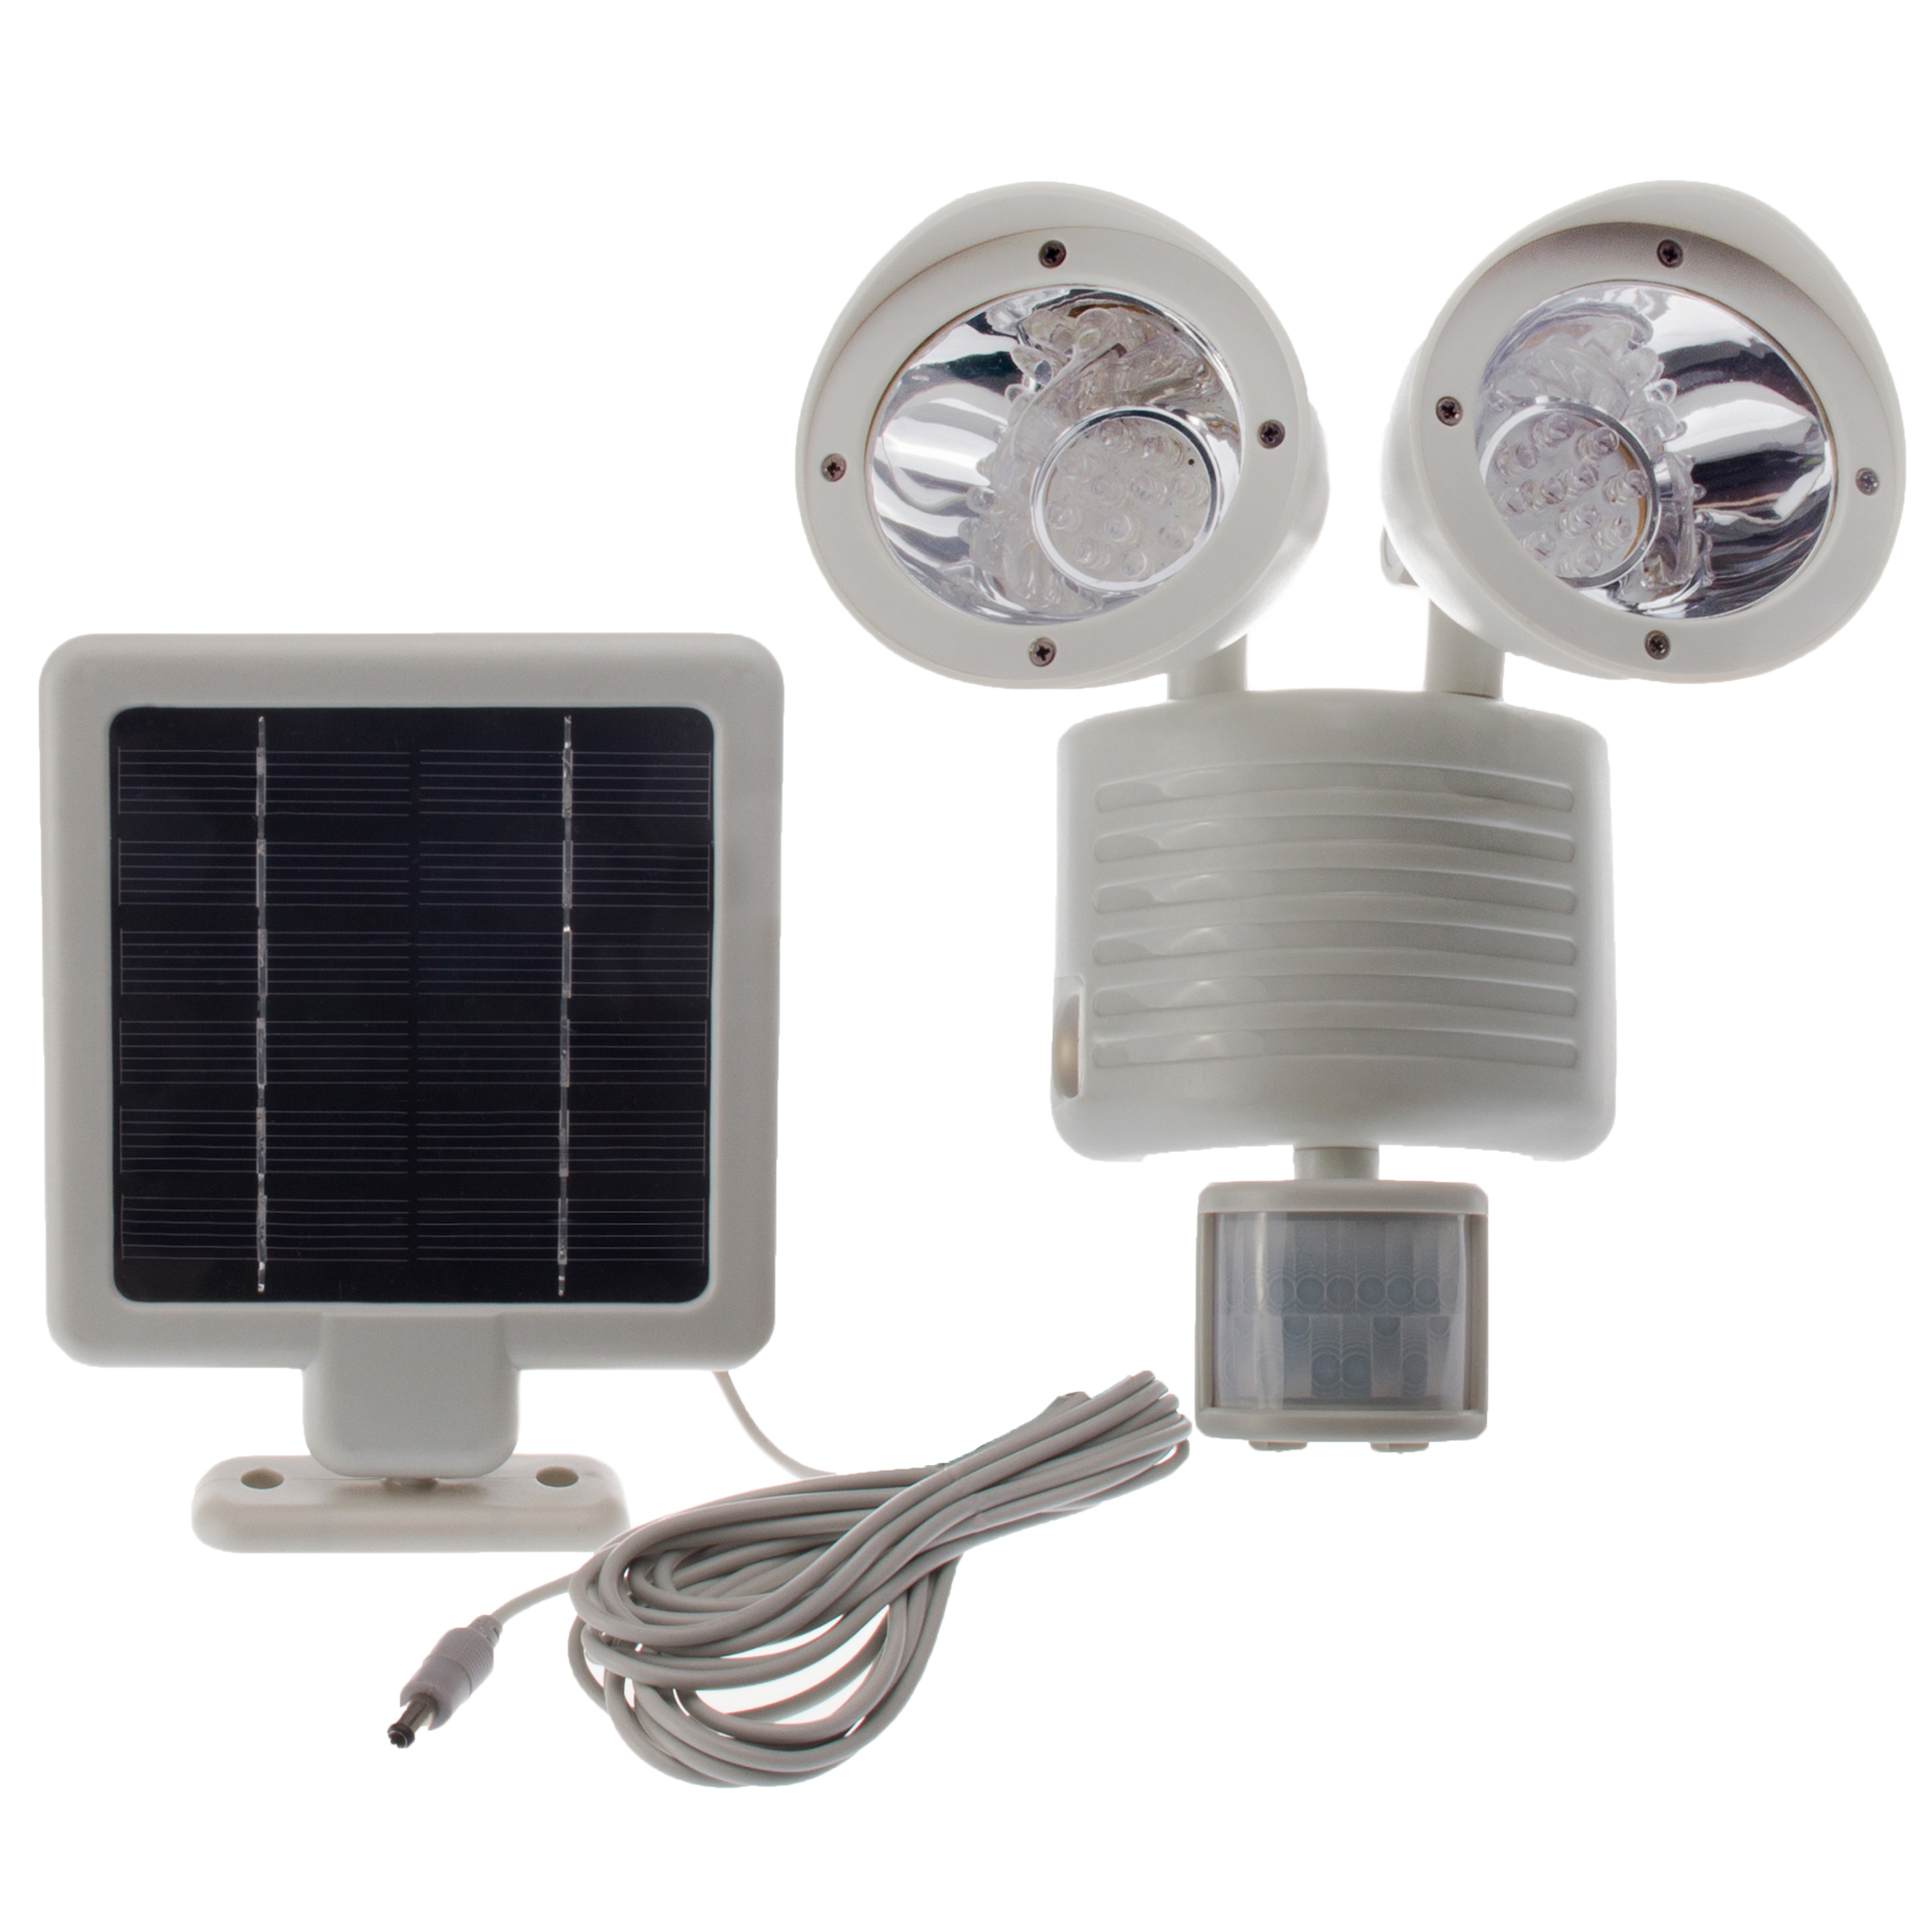 22 led solar power motion sensor pir outdoor security. Black Bedroom Furniture Sets. Home Design Ideas